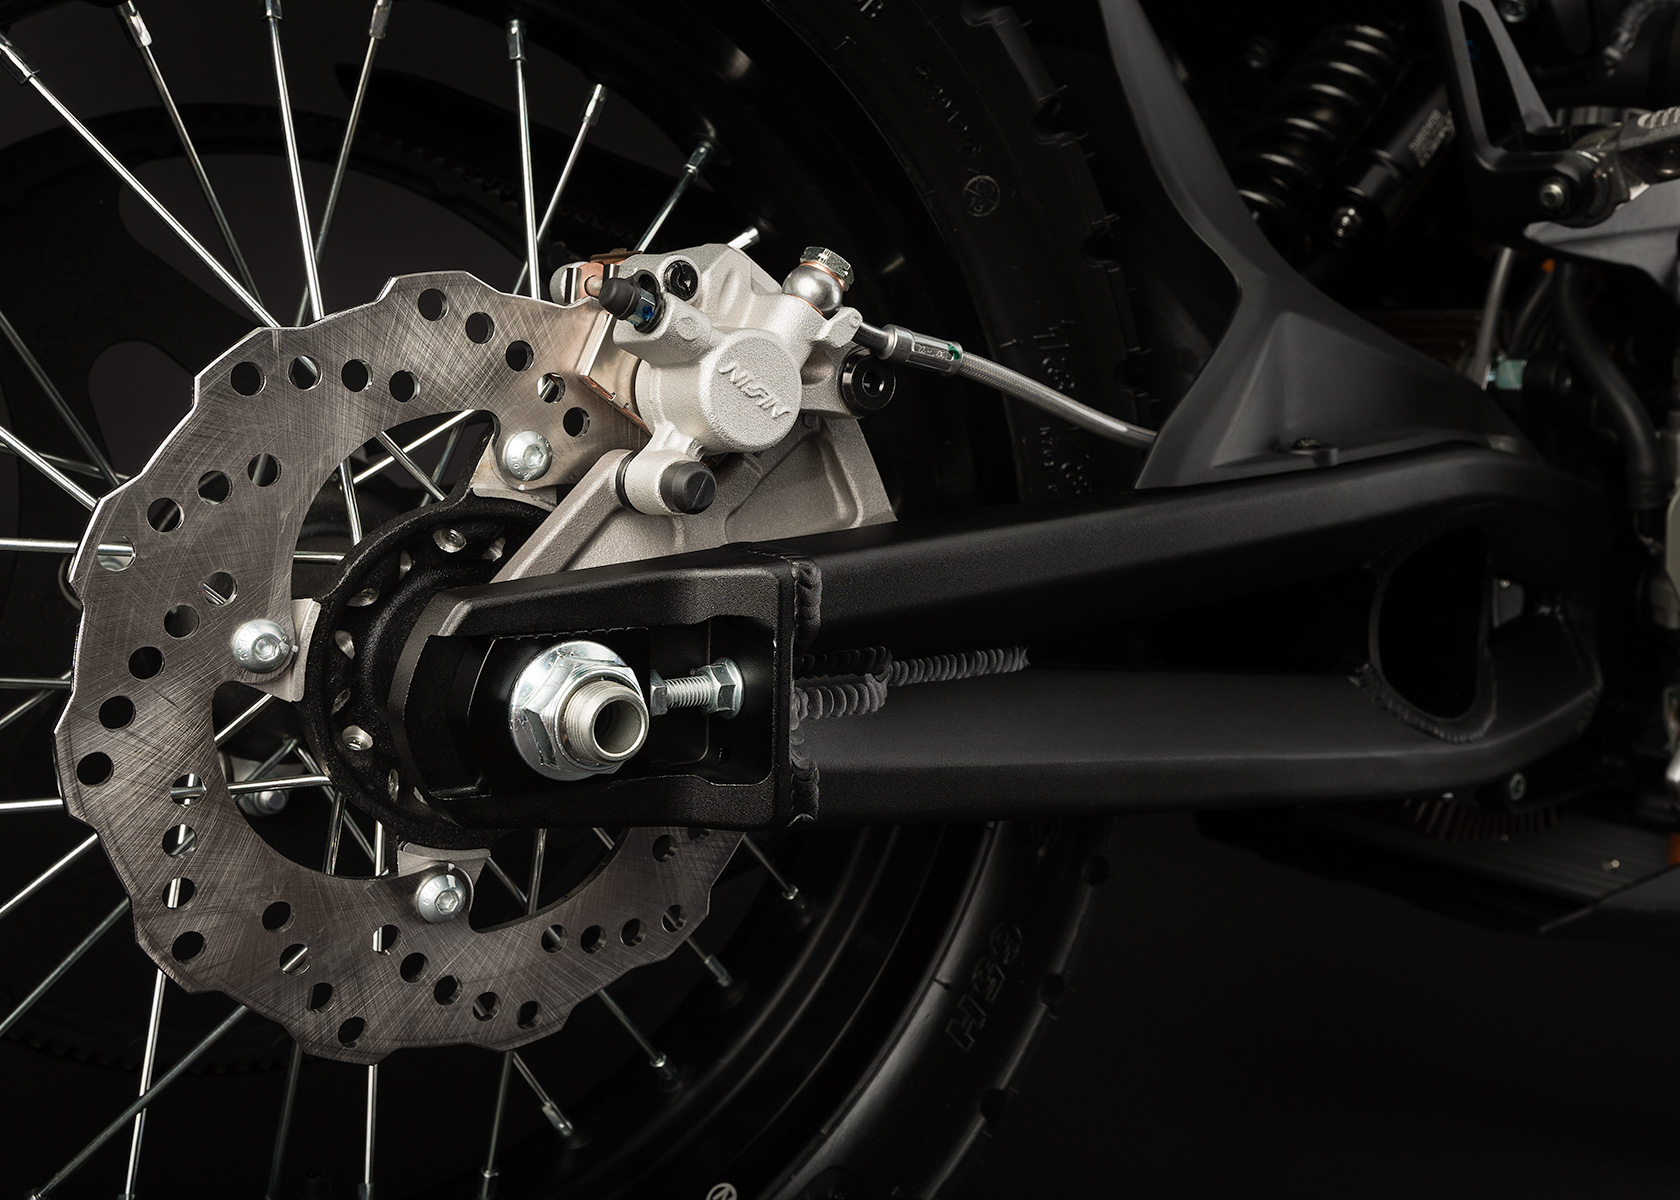 2013 Zero DS Electric Motorcycle: Rear Brake